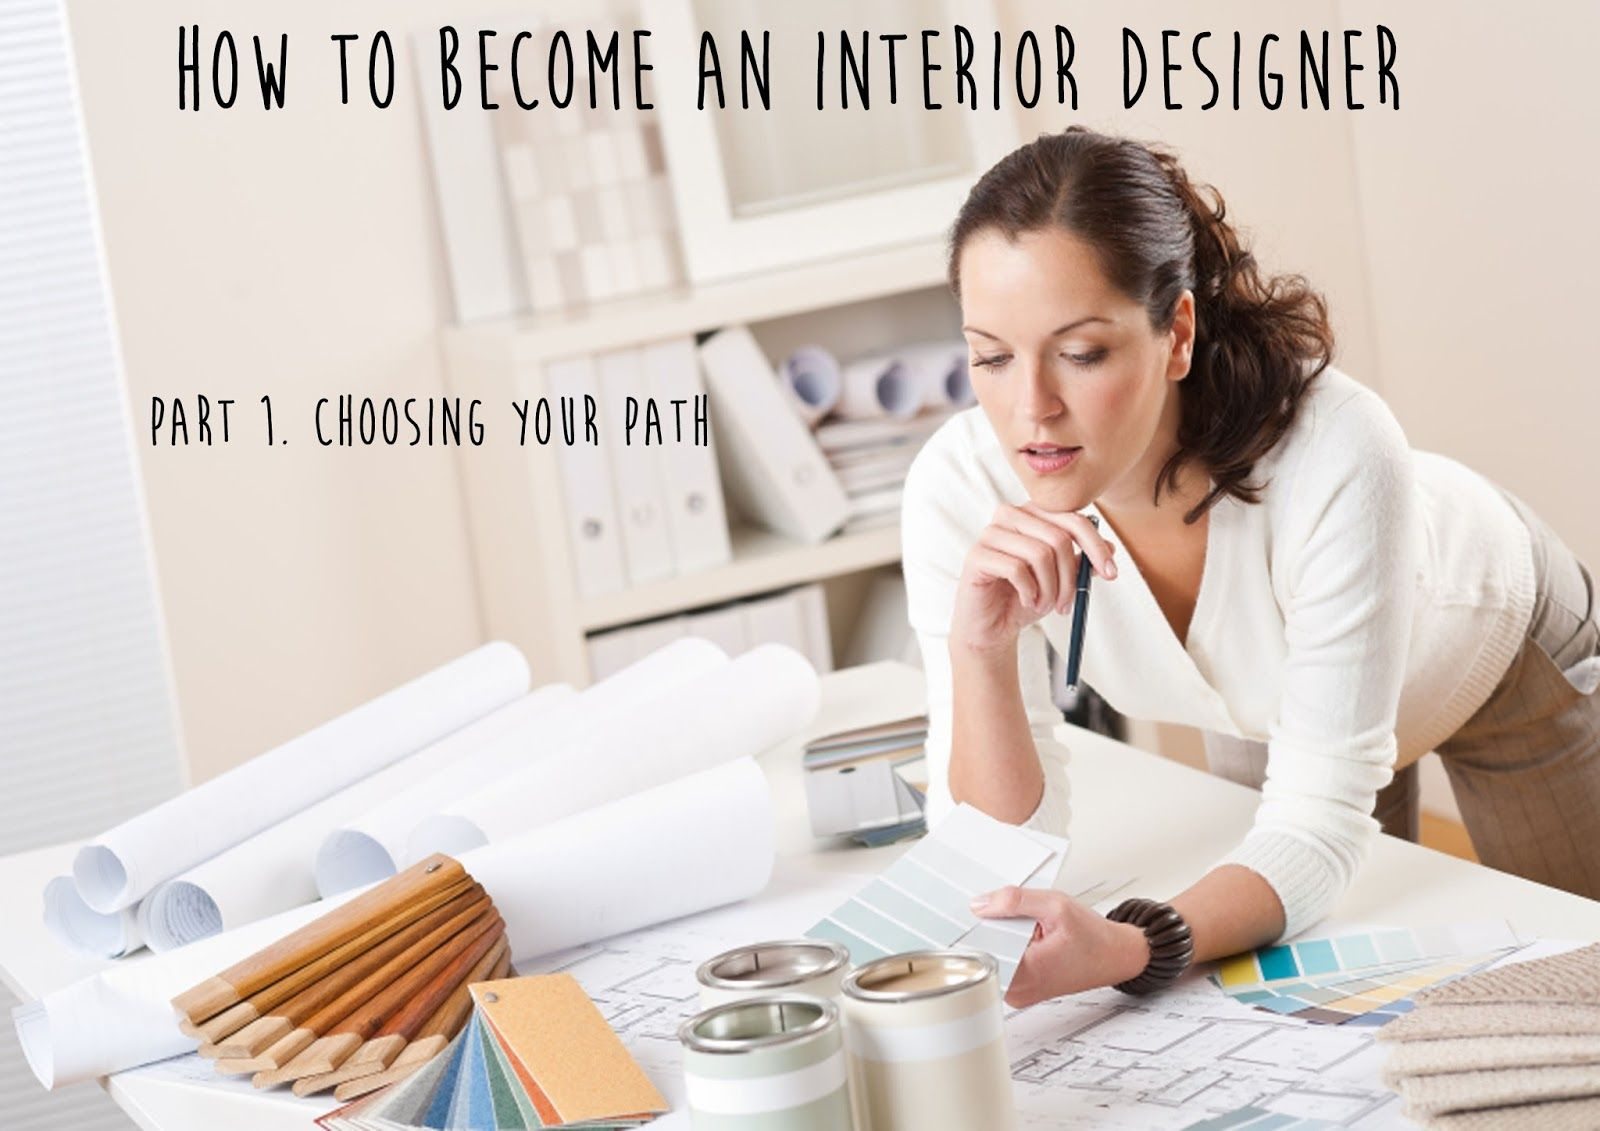 part how graduate with first class degree interior design lovely rh pinterest com becoming interior designer without degree becoming interior designer without degree